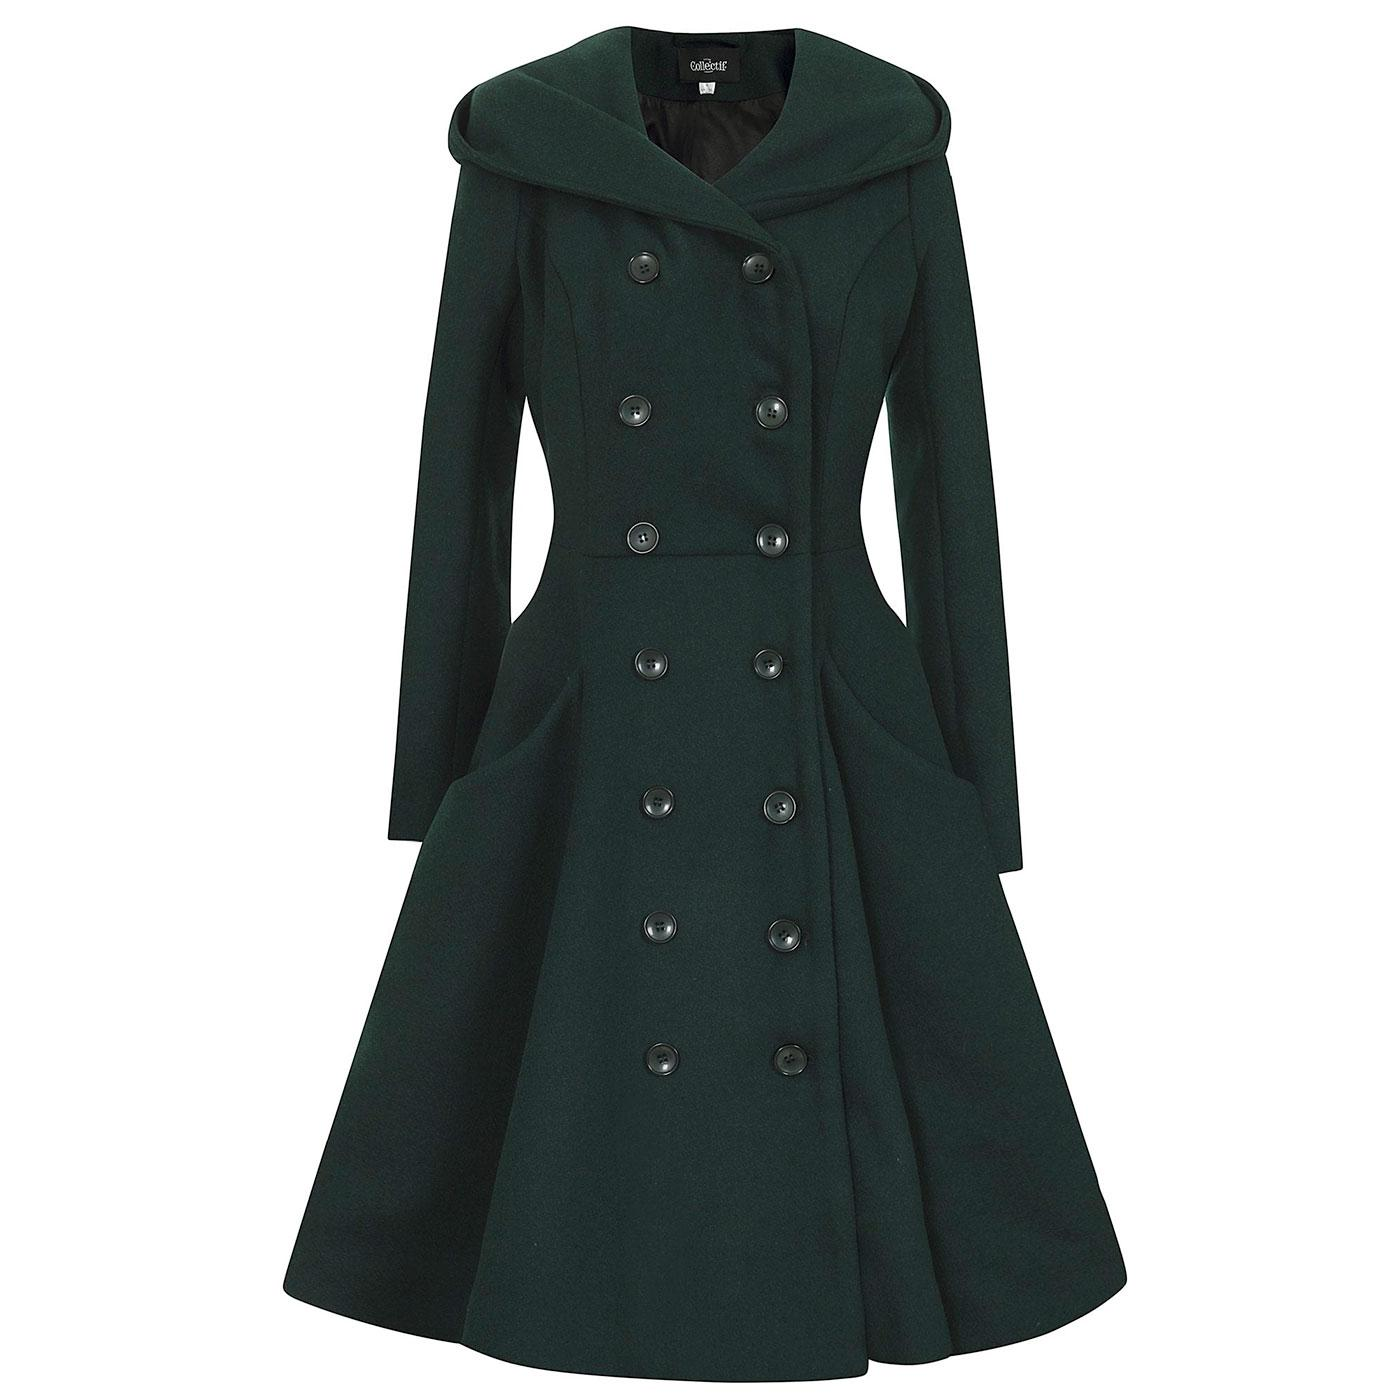 Heather COLLECTIF Hooded Autumnal Swing Coat G